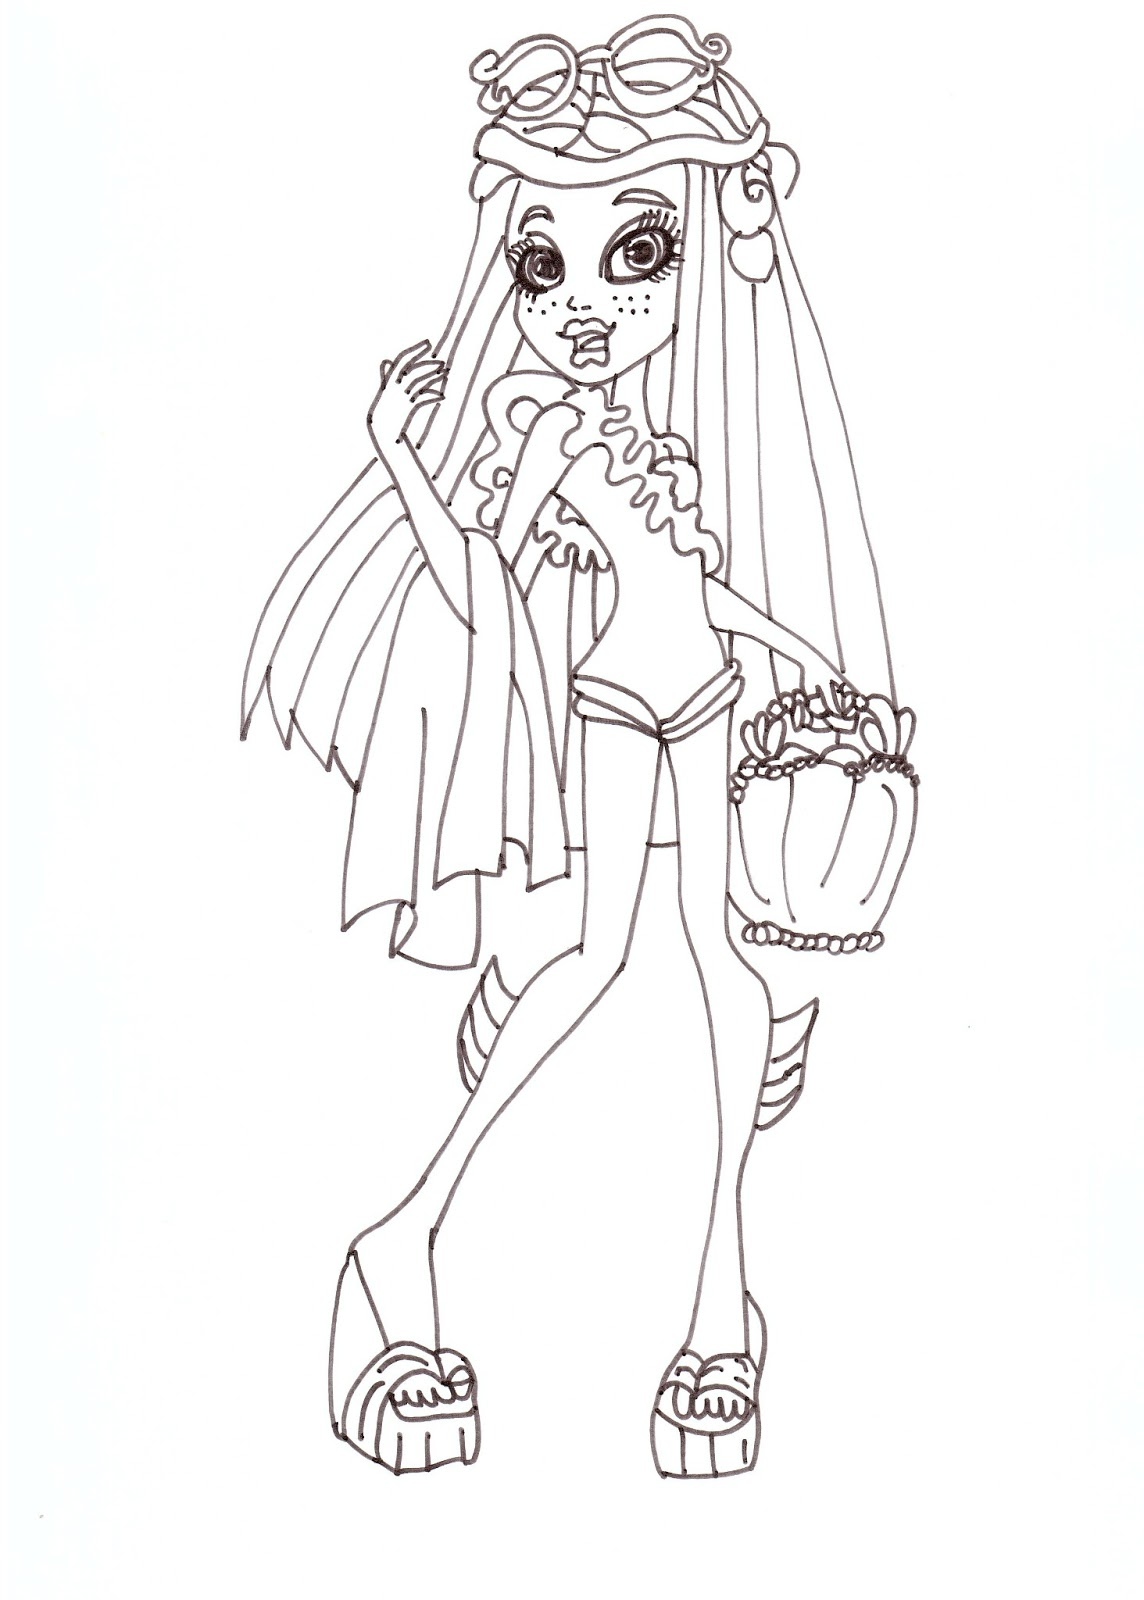 Free Printable Monster High Coloring Pages: Lagoona Swim